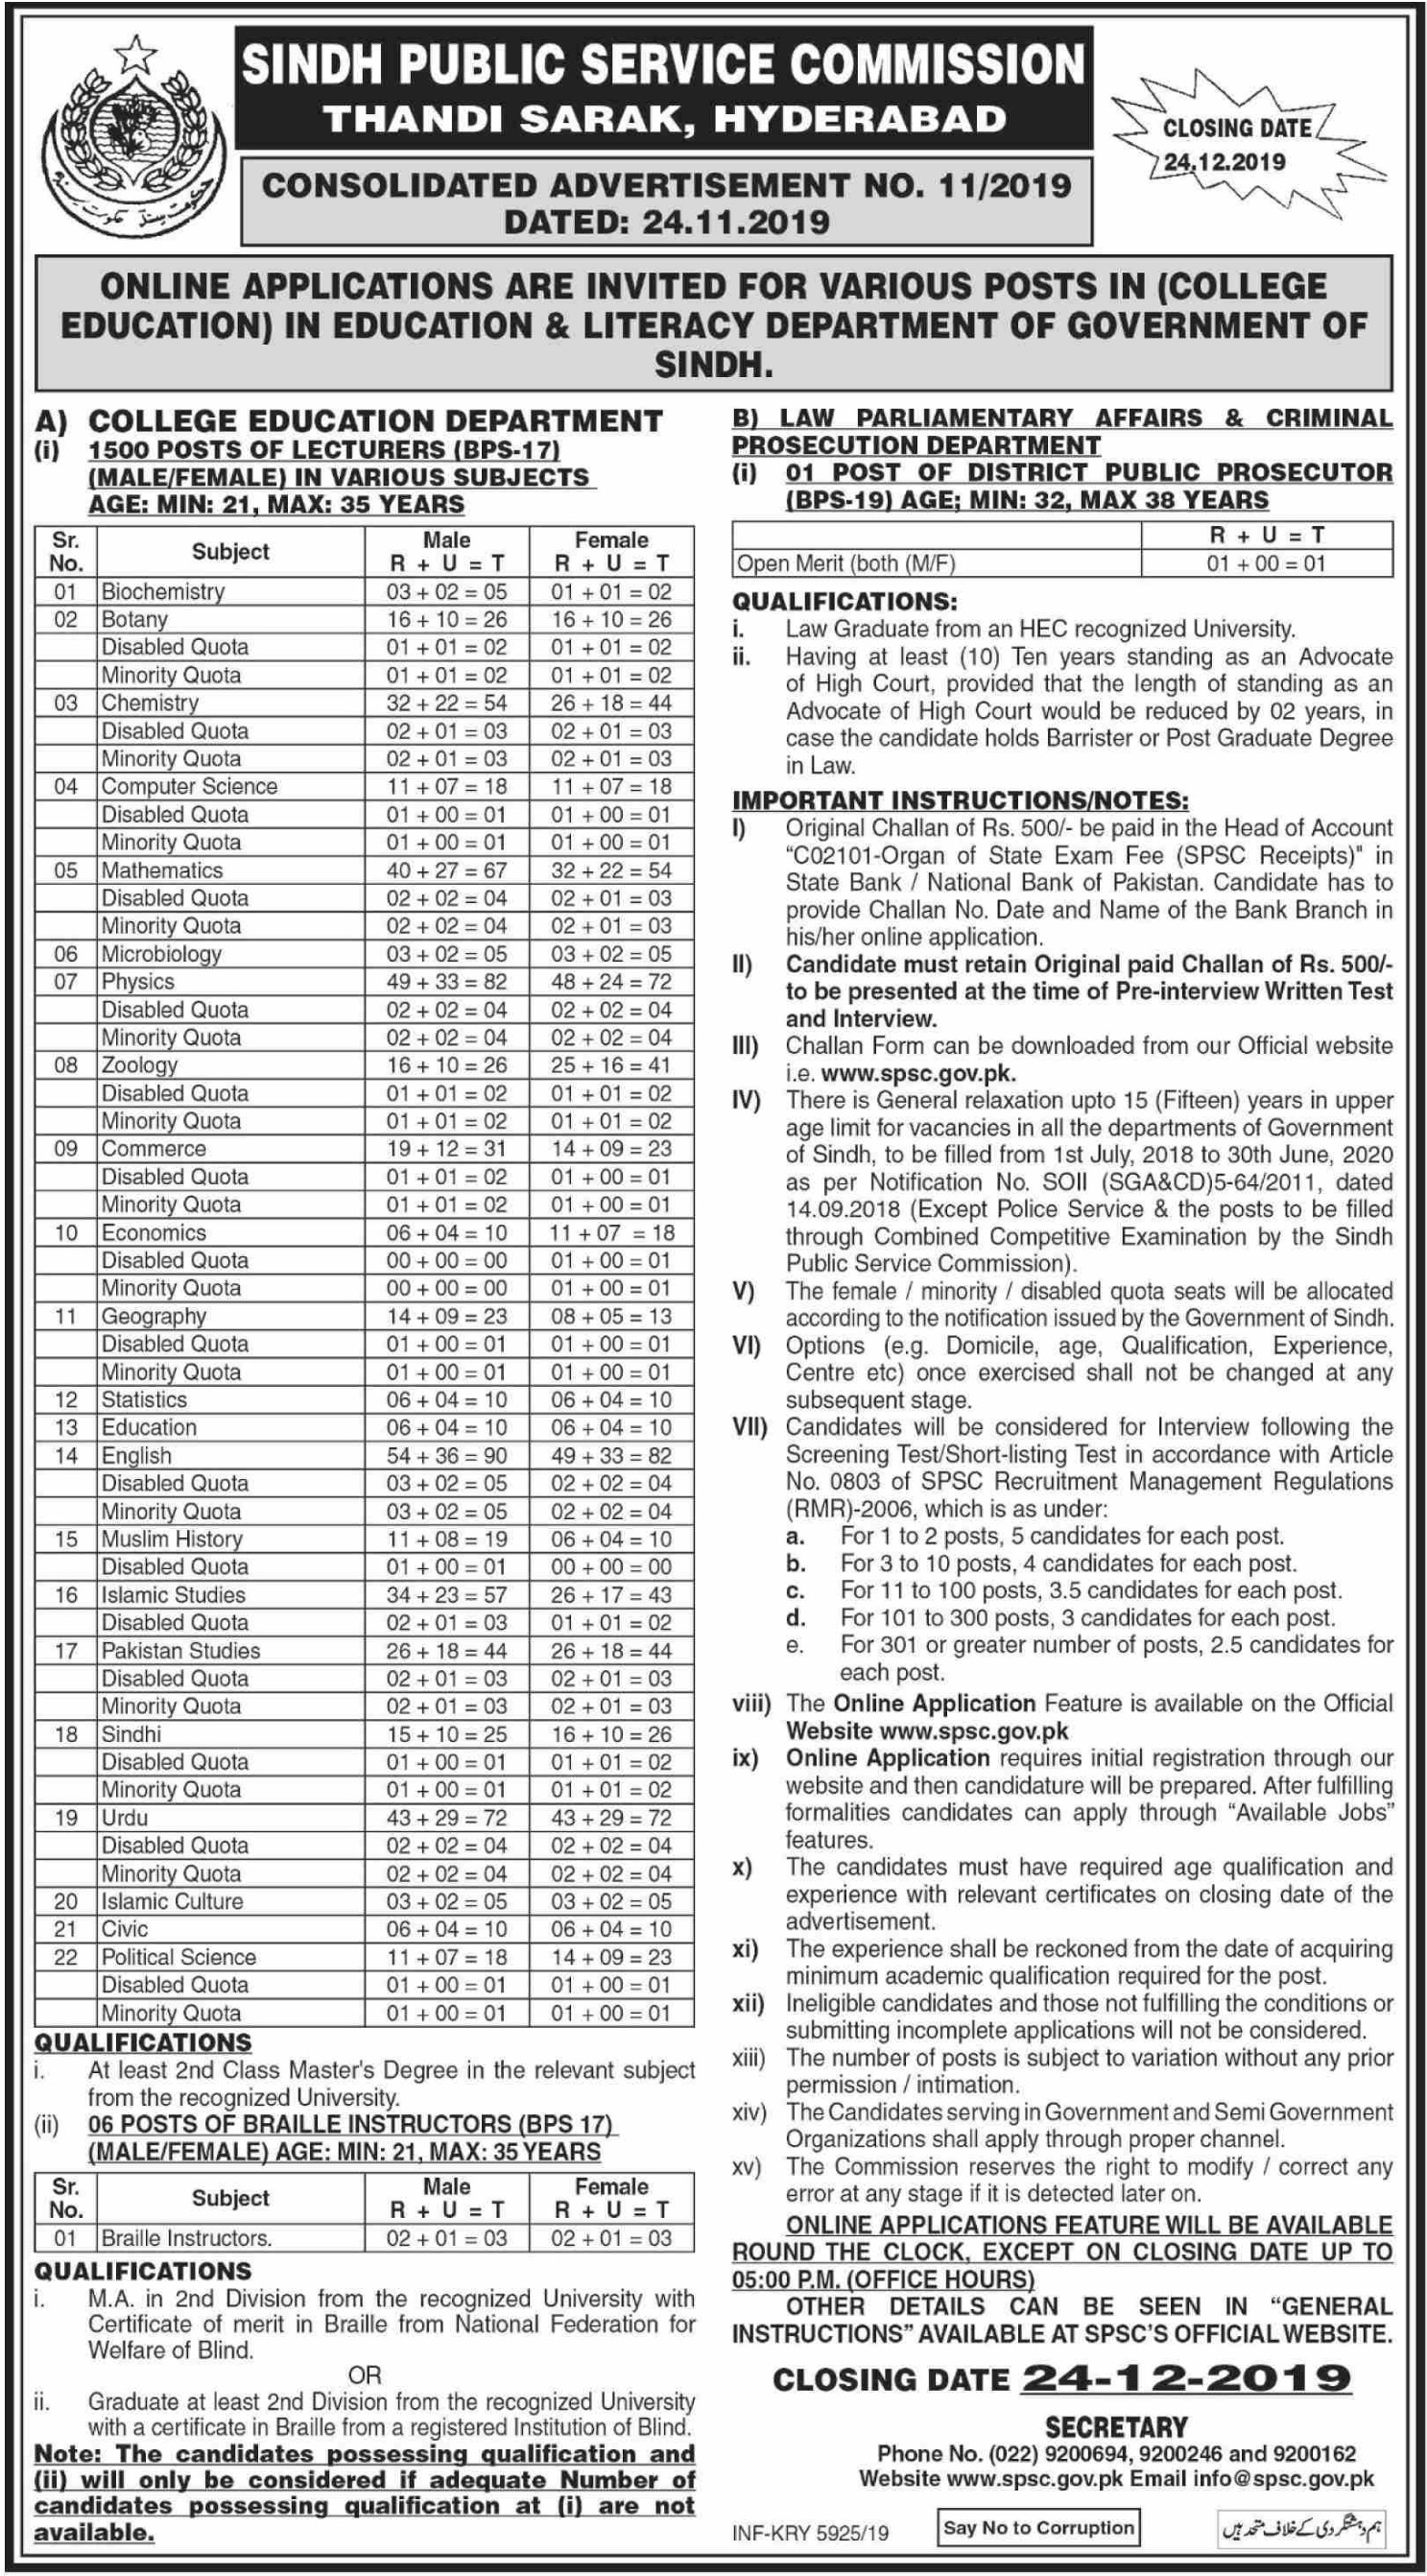 SPSC Jobs 2019 Sindh Public Service Commission